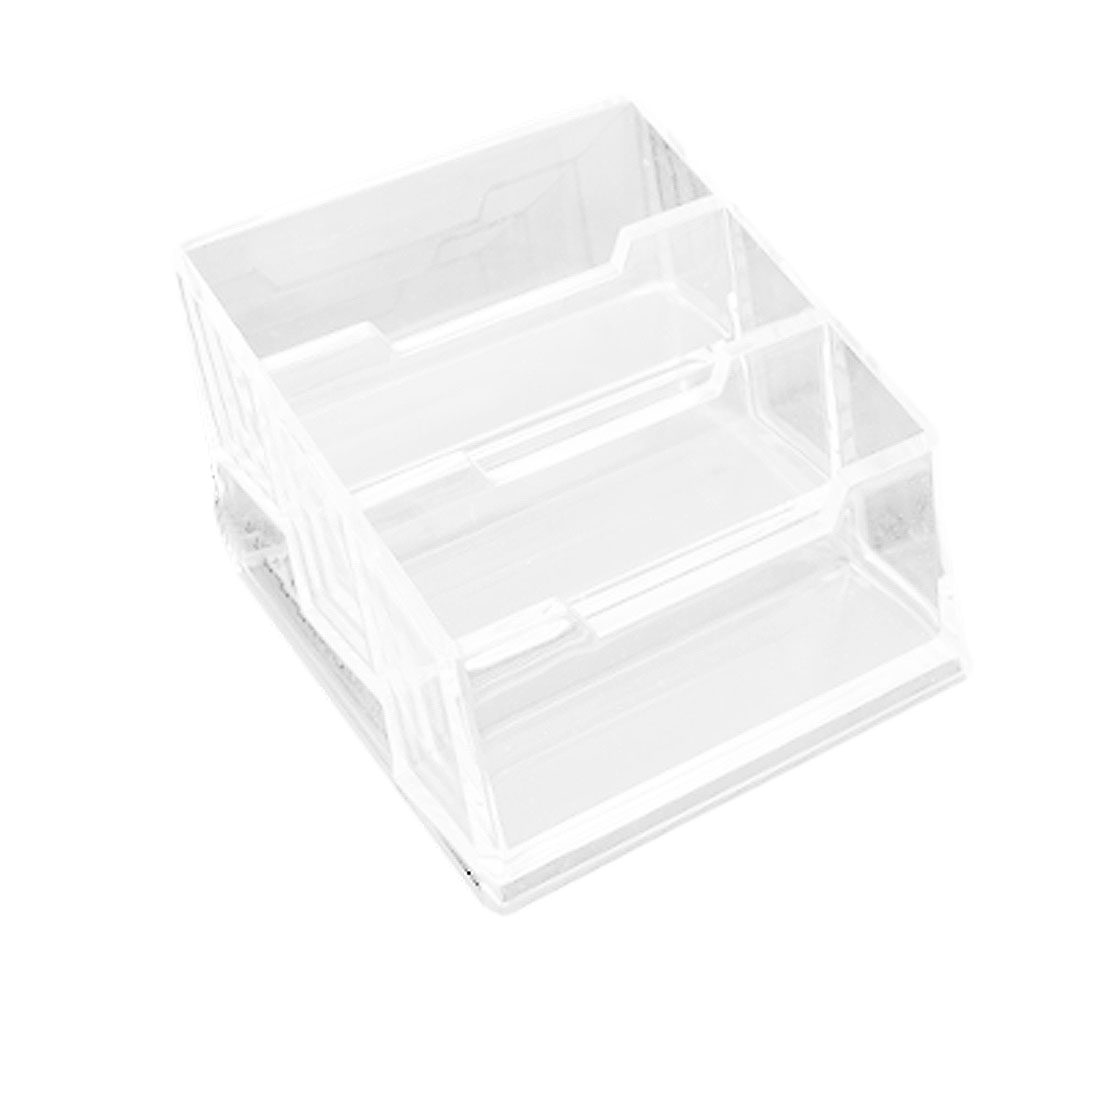 Plastic 3-layer Design Clear Name Business ID Card Stand Holder Case Box